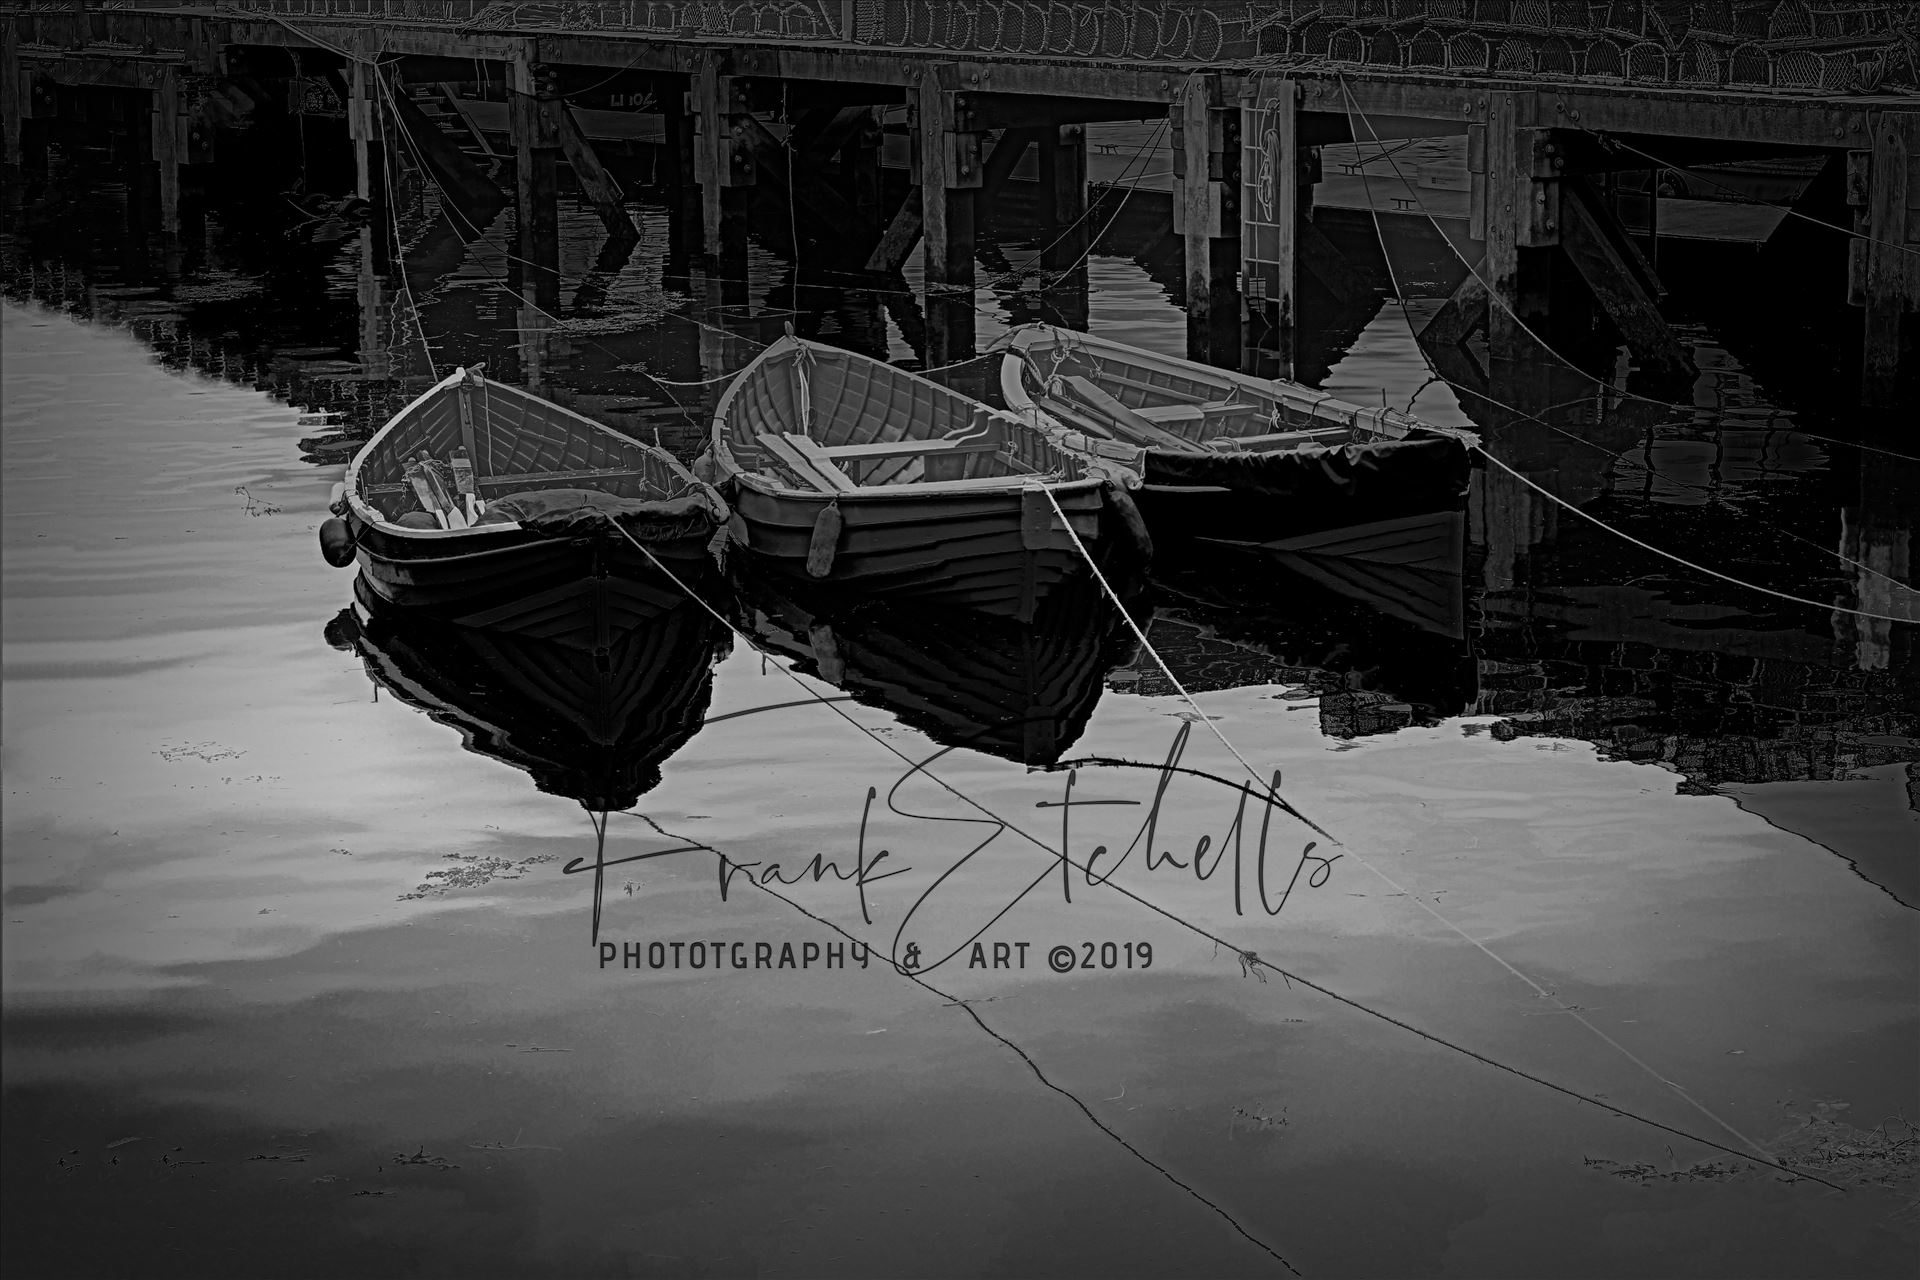 Tethered Boats, Whitby 1, Edit; Vector Subtle PA - On a trip to Whitby in Yorkshire in 2012 and a walk through the town brought us to the harbour quay side and these small tethered boats, their bows and ropes reflected in the sea water and lobster pots neatly in stacks on the walkway. A